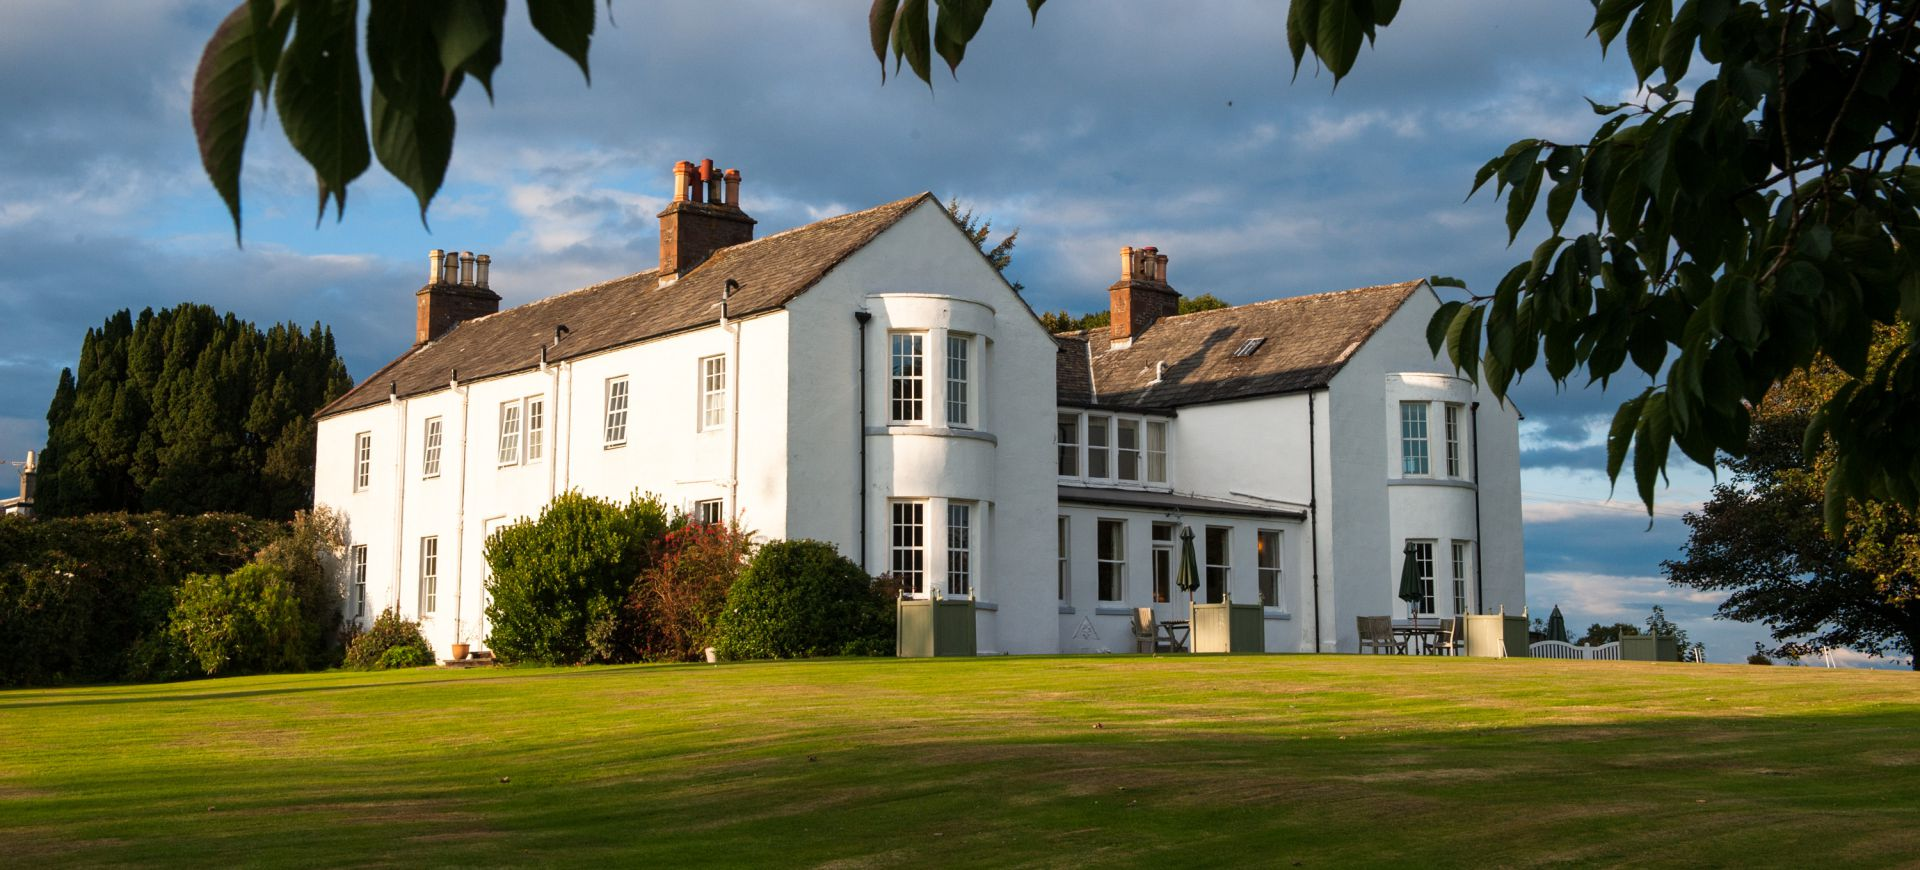 Luxury Hotel In Scotland Hotels Dumfries And Galloway